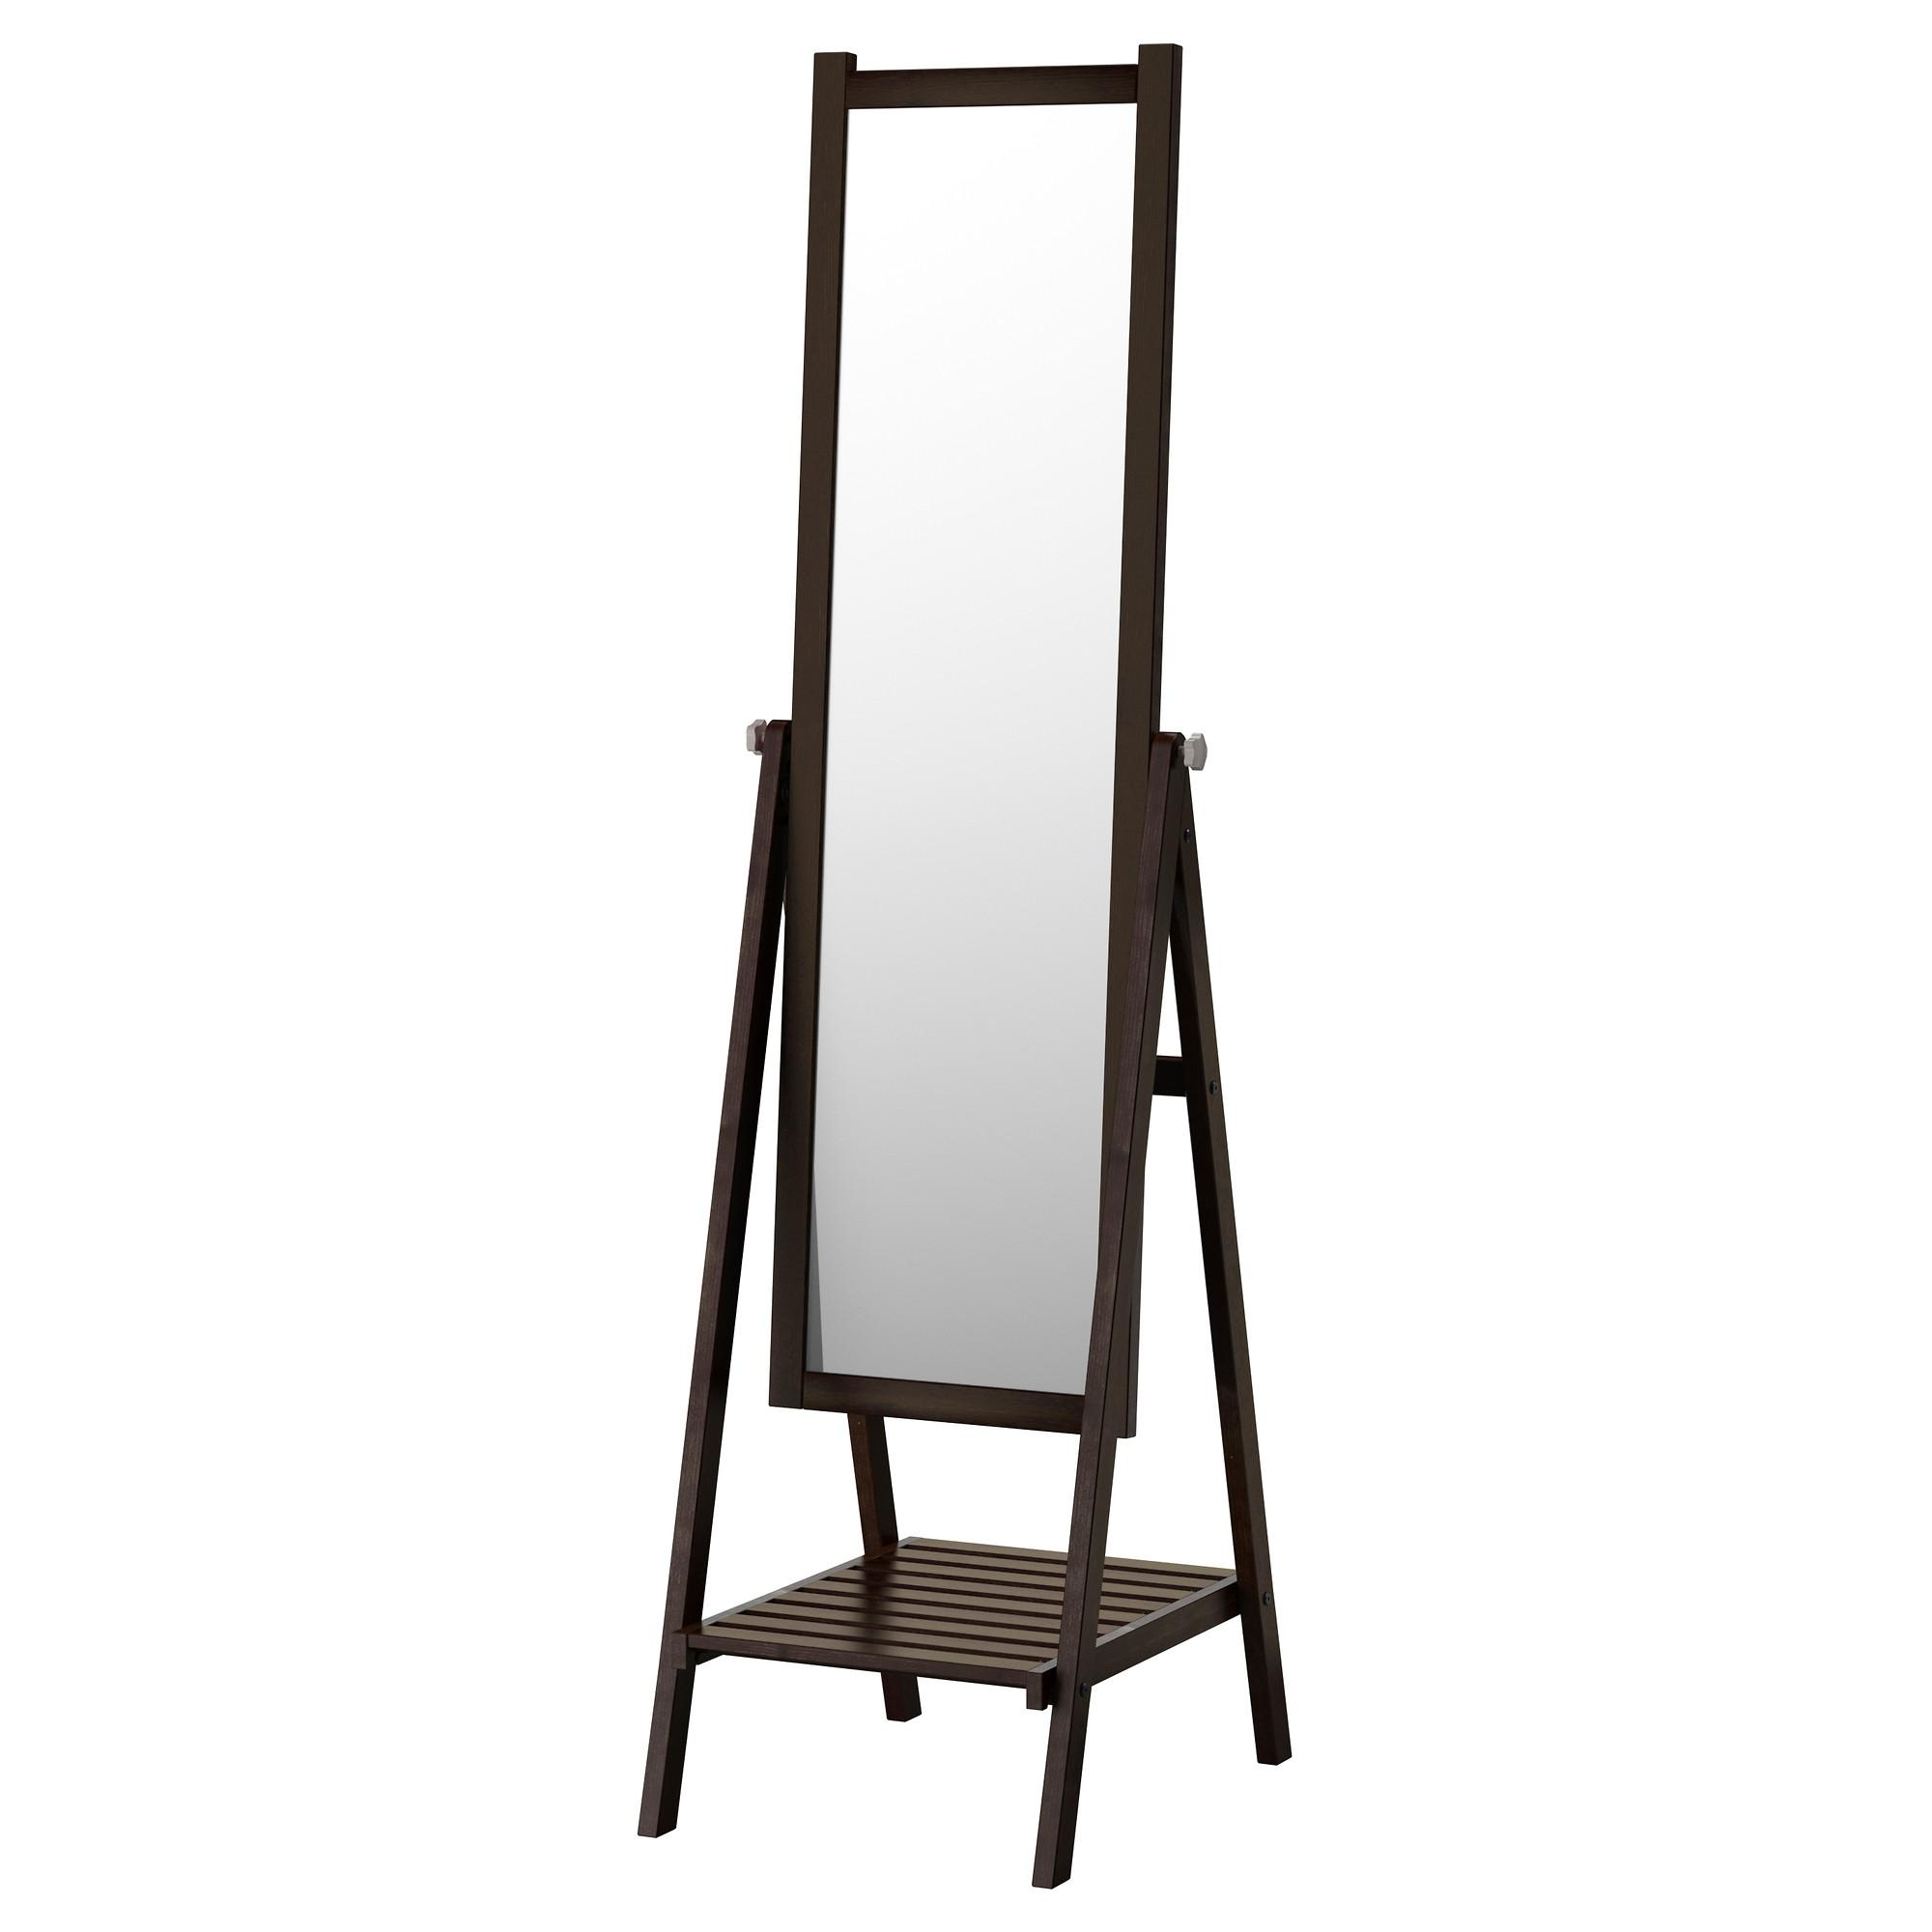 Mirrors: Astonishing Full Length Mirror With Stand Full Length For Cheap Stand Up Mirrors (View 15 of 20)